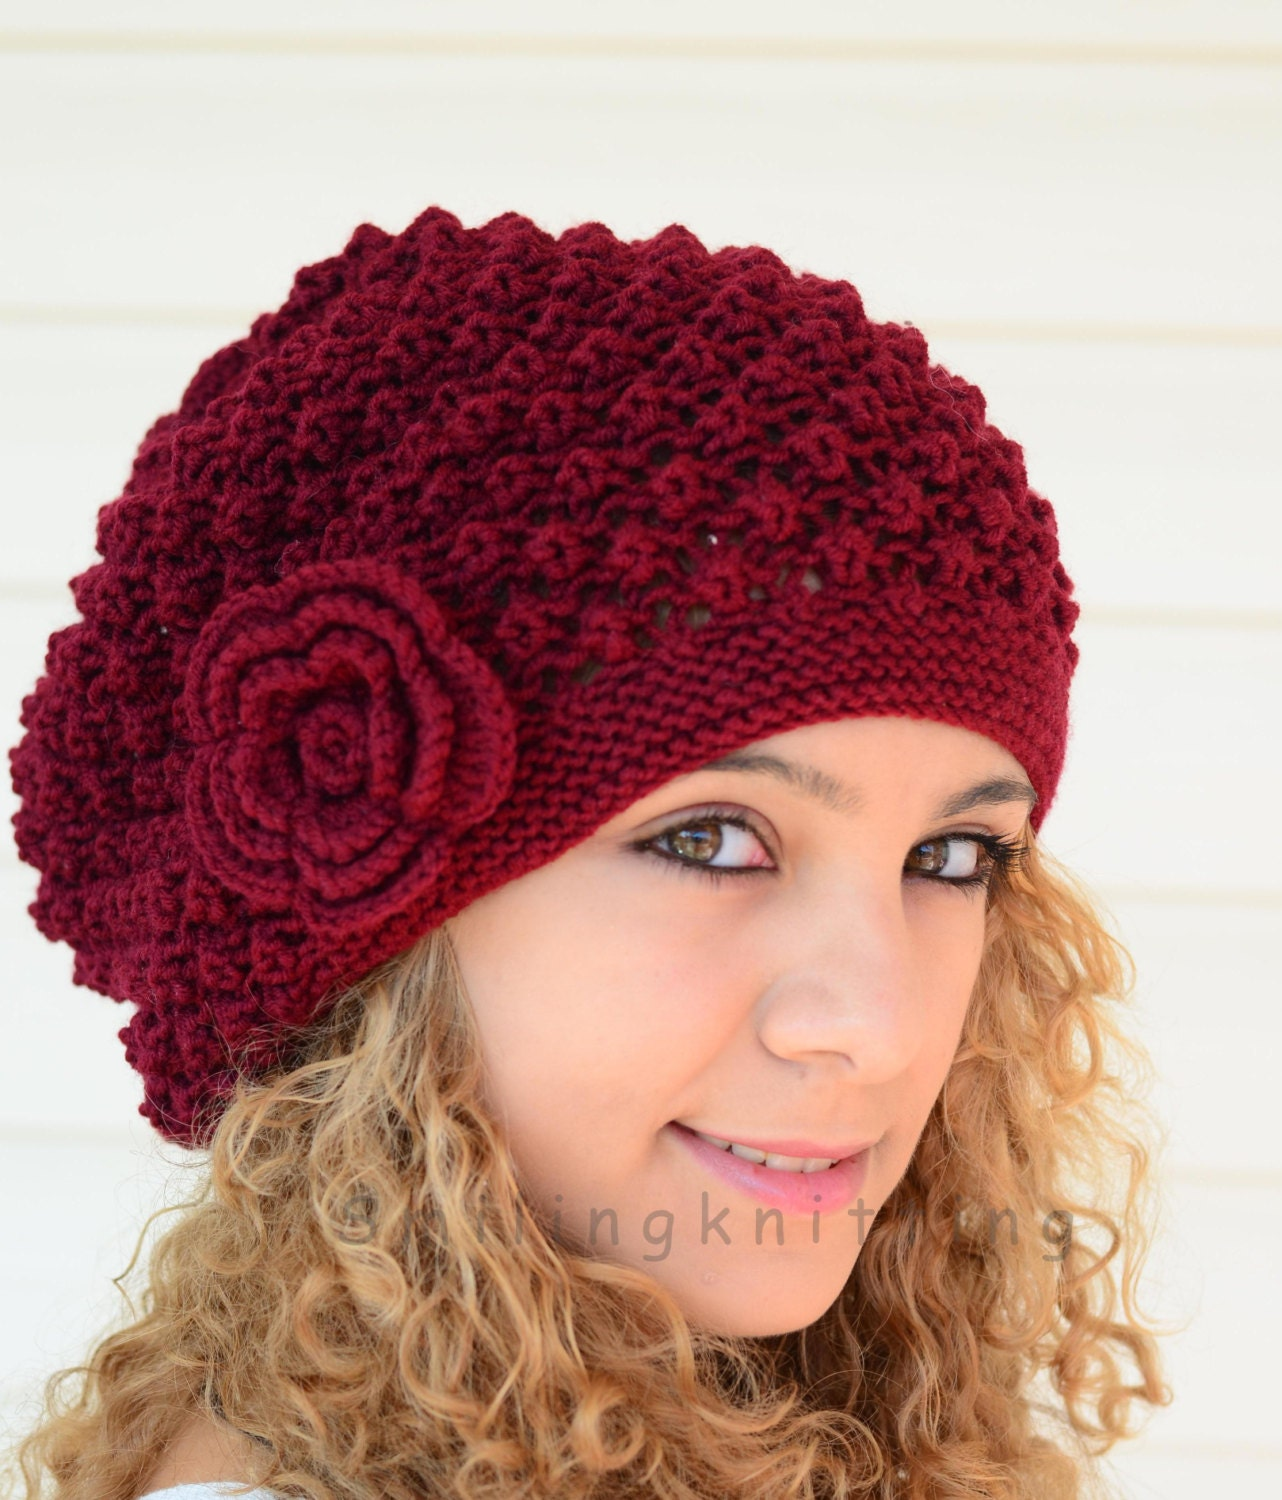 Hand Knitted Hat Patterns : Hand Knitted Hat Burgundy Knit HatSlouchy Hat Beret